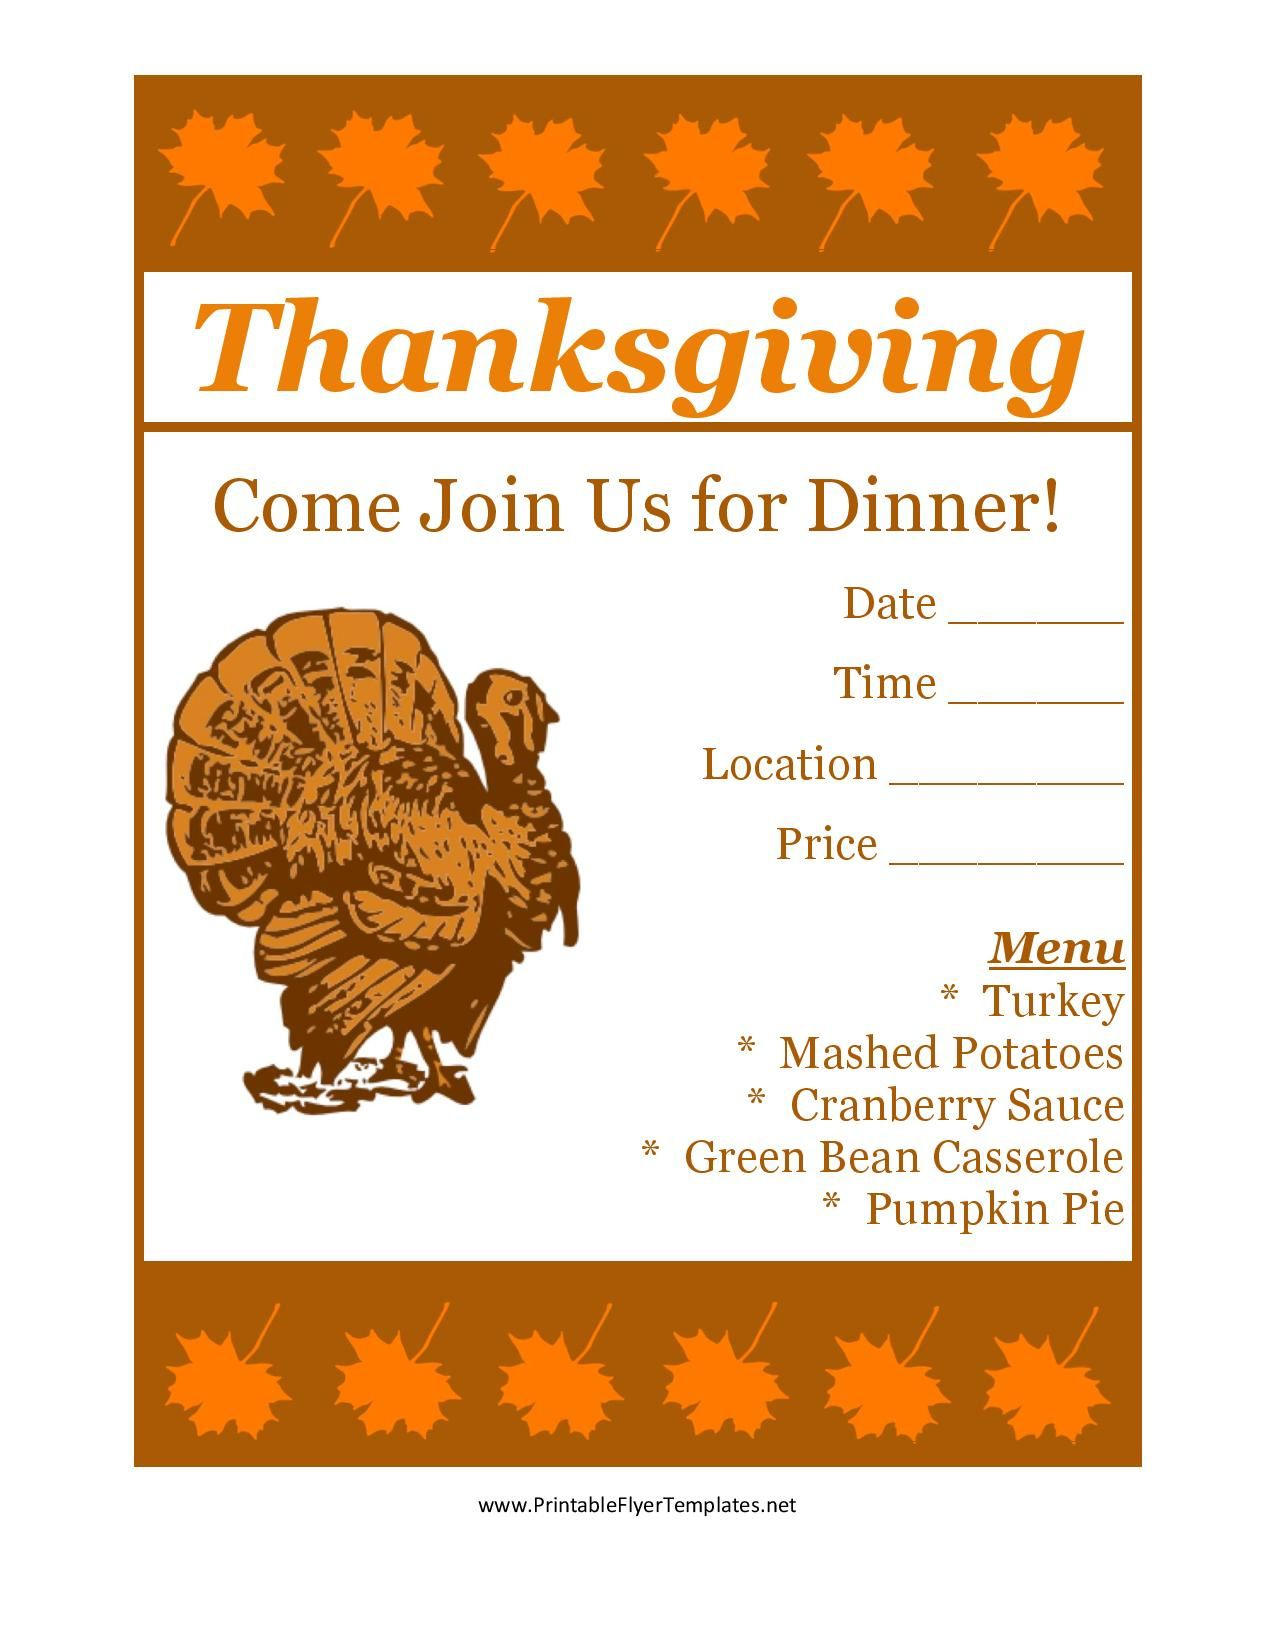 Free Printable Thanksgiving Flyer Invintation Template | Holiday's - Free Printable Thanksgiving Menu Template